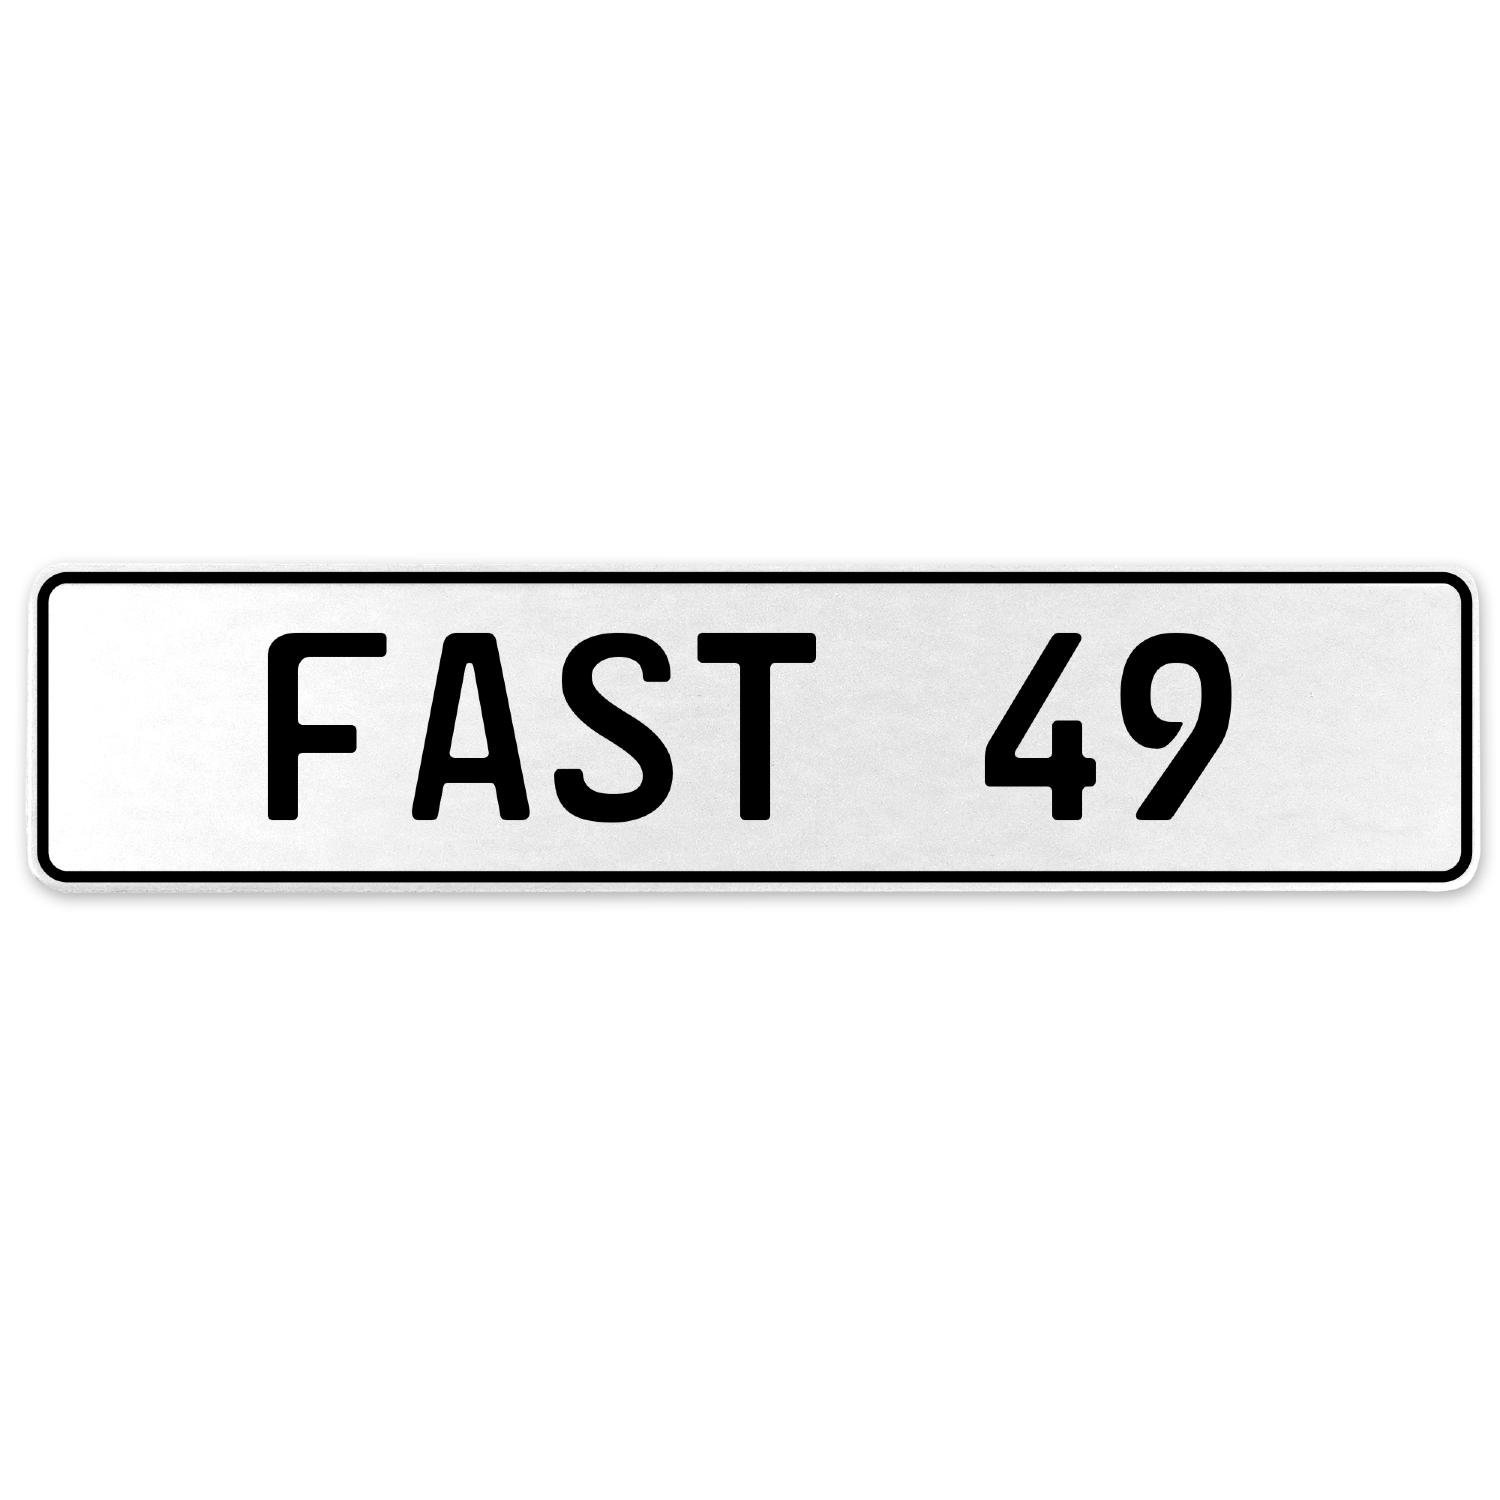 Vintage Parts 557319 Fast 49 White Stamped Aluminum European License Plate